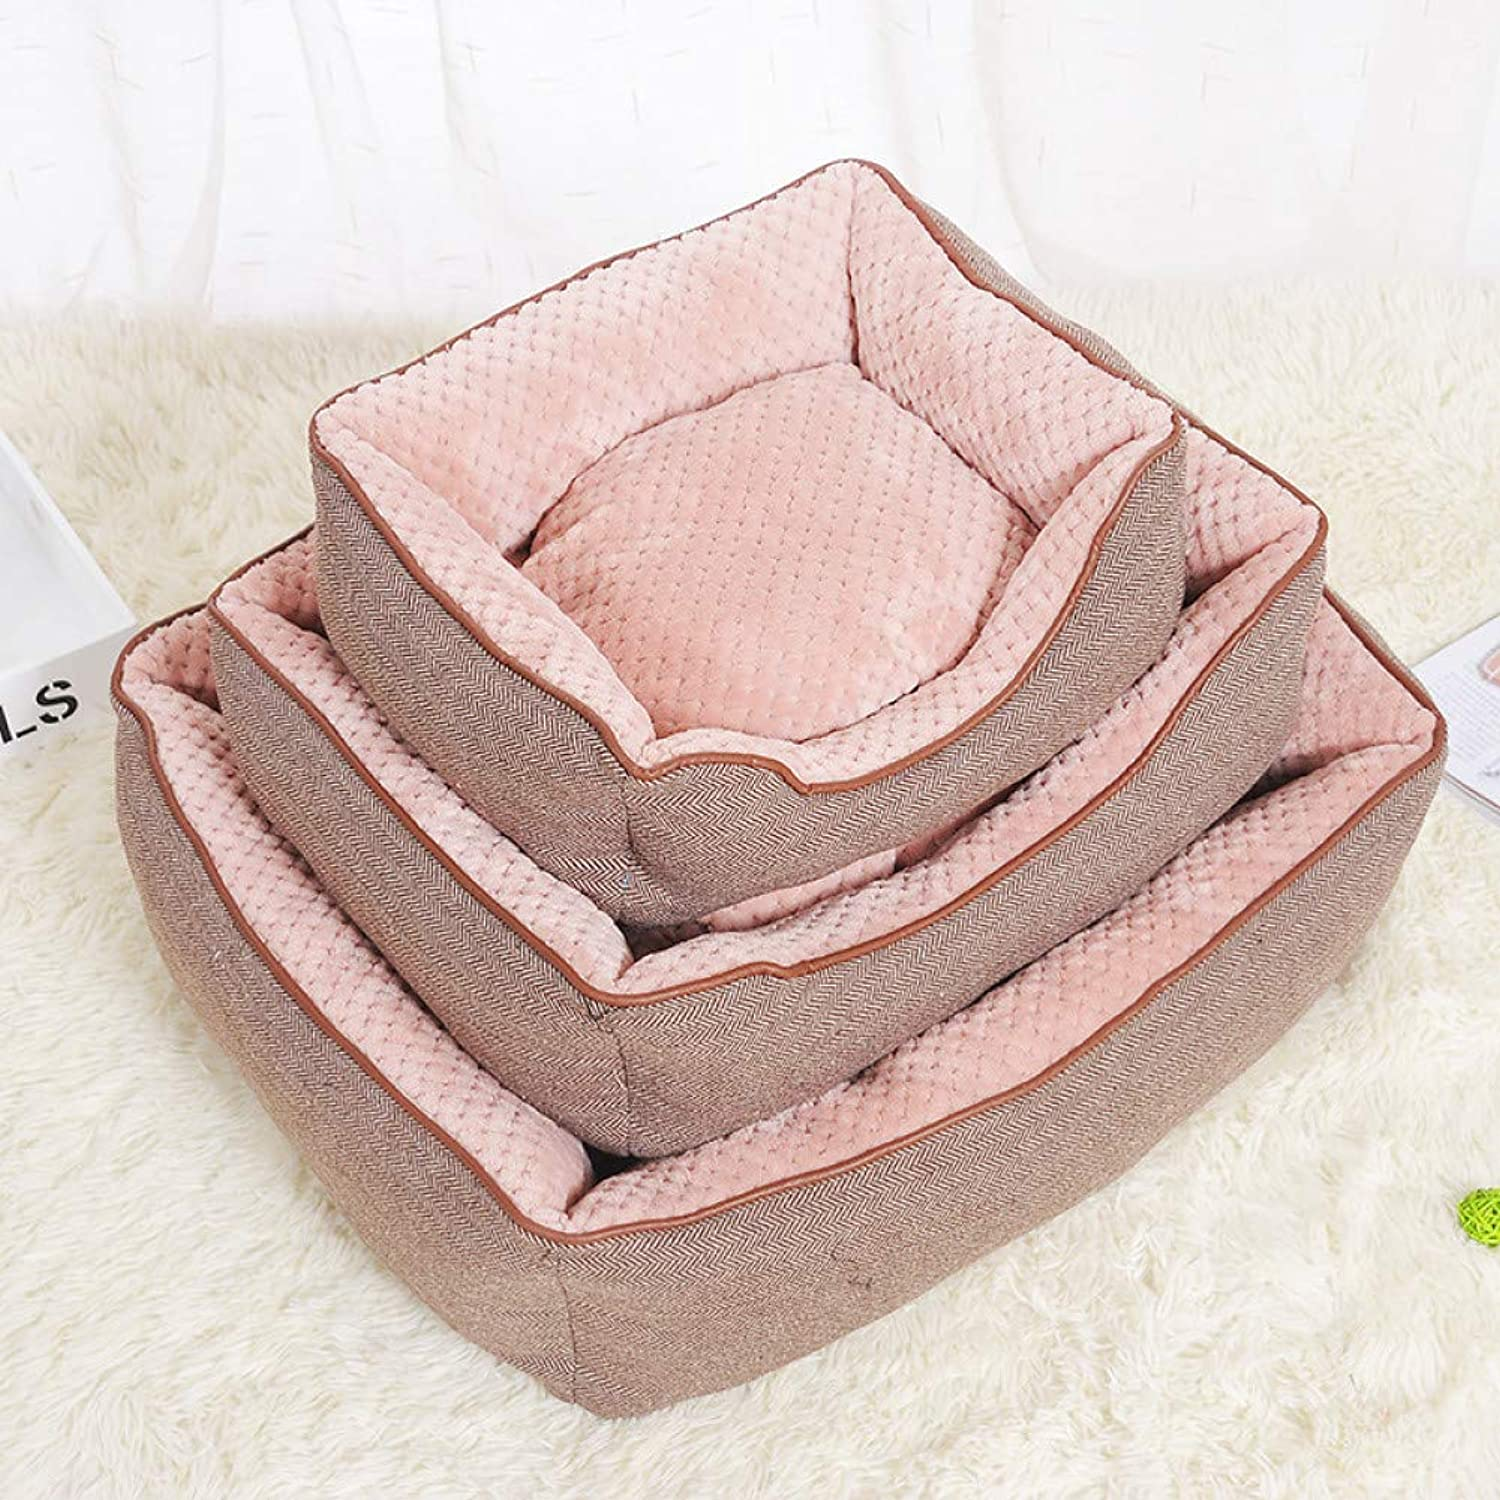 Aigou Dog Bed Soft Dog Bed Mat Cotton Linen Corn Kernels Pad For Small Medium Pets Bed House Cushion With Removable Pet Mat Nest Pet Supplies